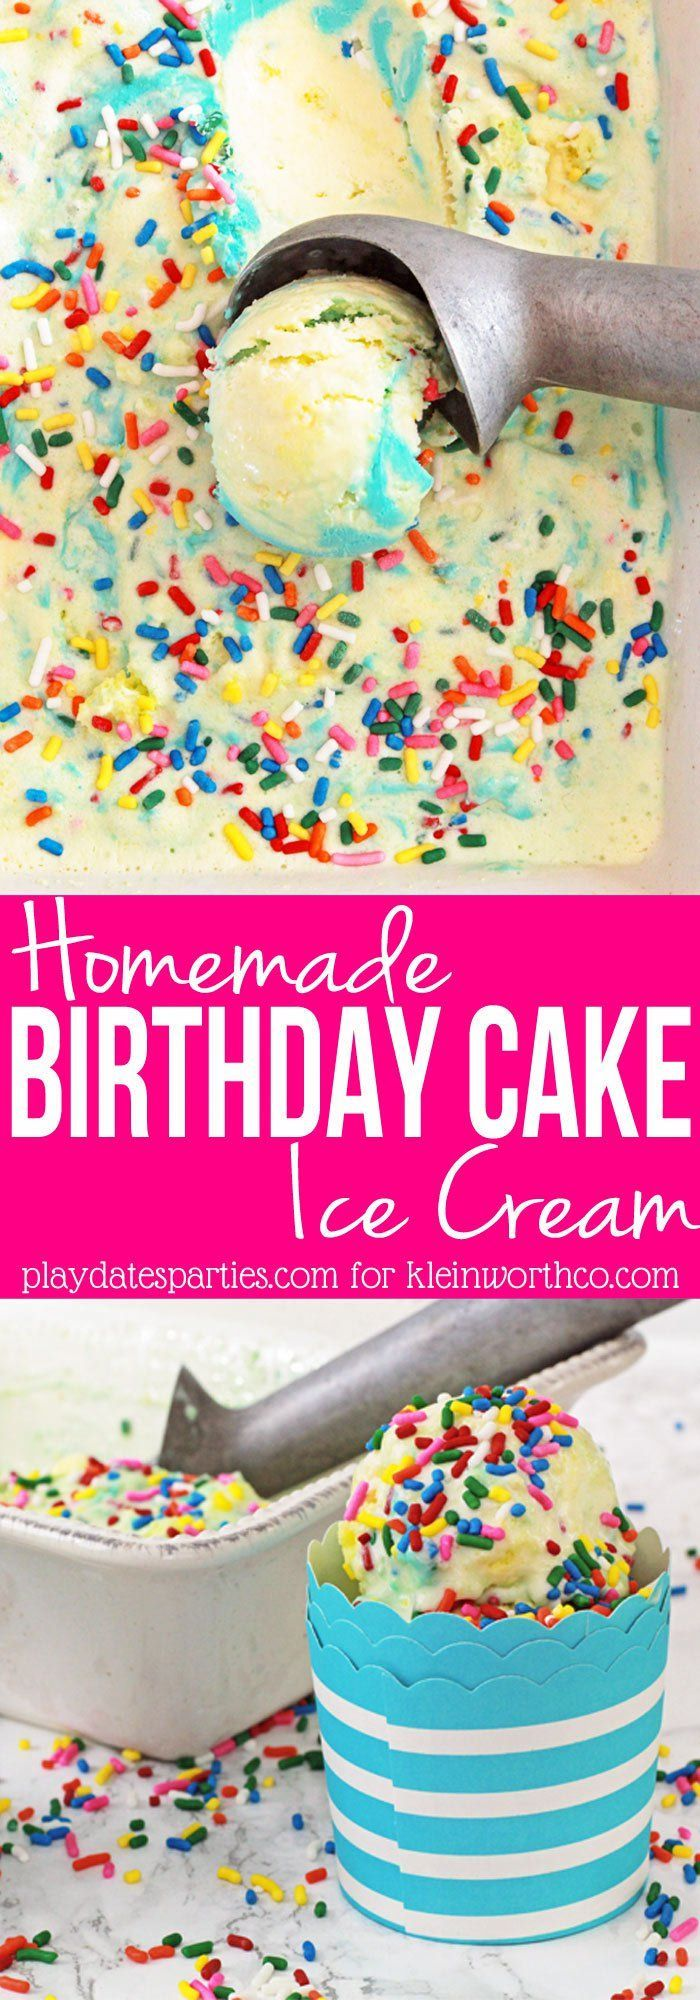 Celebrate anytime with Birthday Cake Ice Cream! Rich butter-flavored ice cream is packed with real cake, rainbow sprinkles, and a blue frosting ribbon. YUM! #eis #eis selber machen #homemade ice cream #ice cream #ice cream cake #ice cream design #ice cream desserts #ice cream recipes